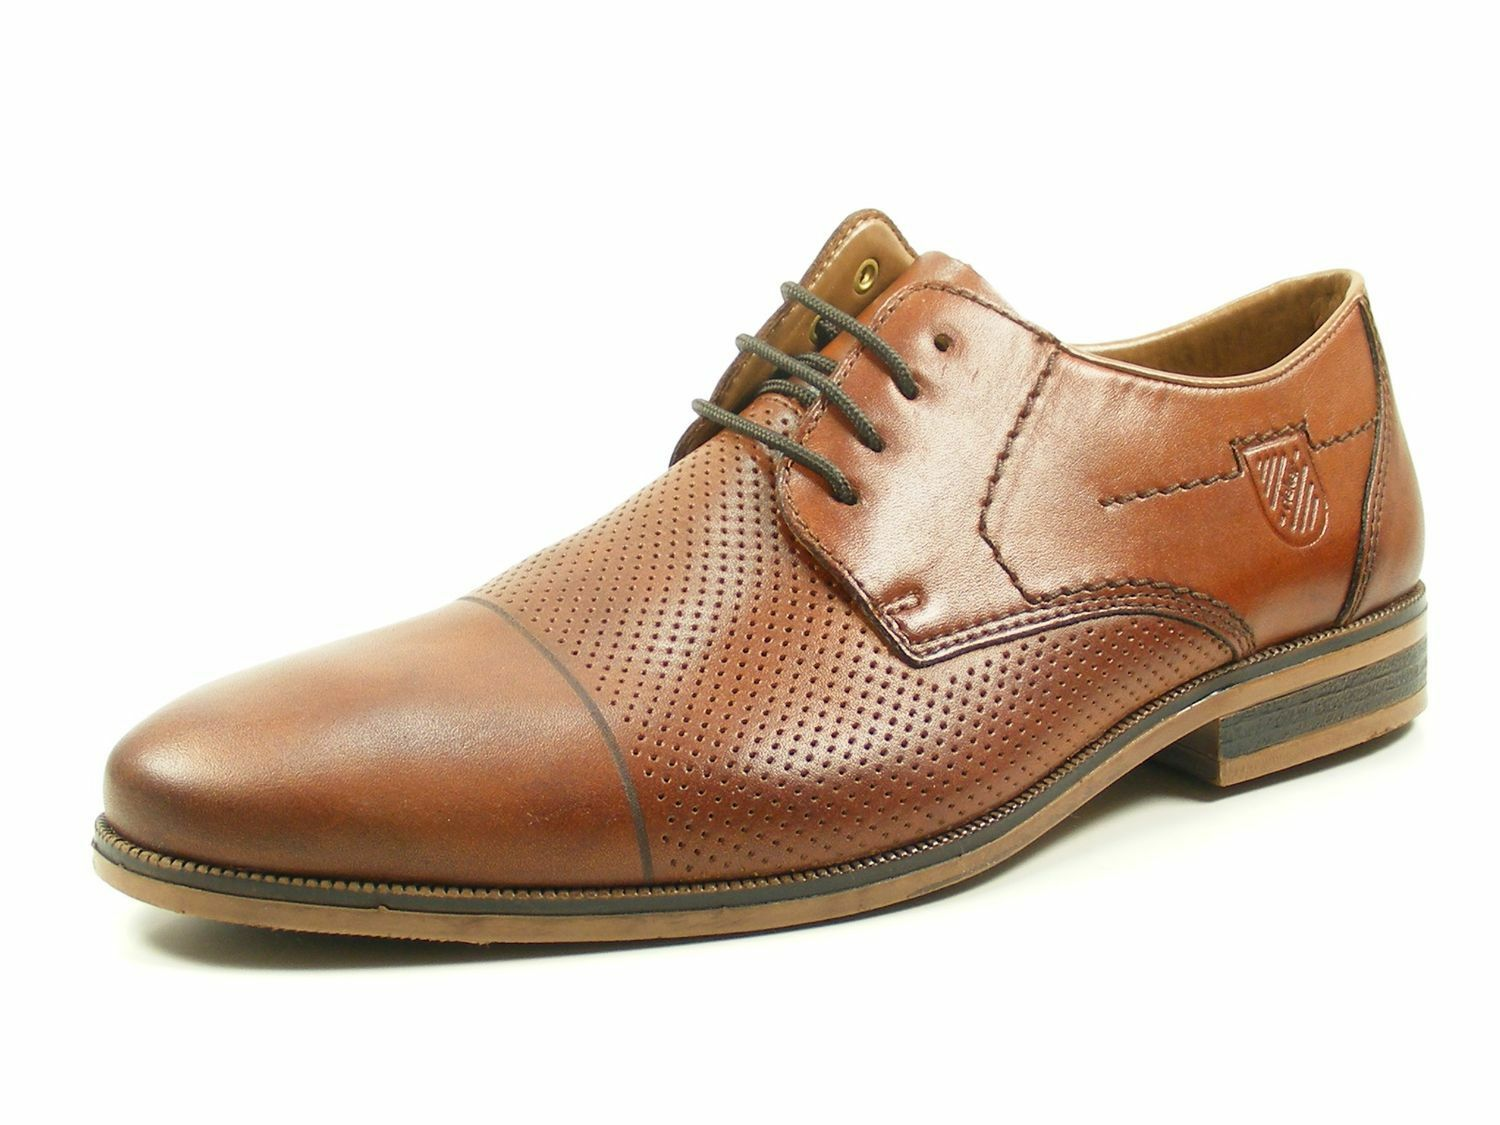 Rieker 11615-24 Chaussures Homme Basses Chaussure Lacée